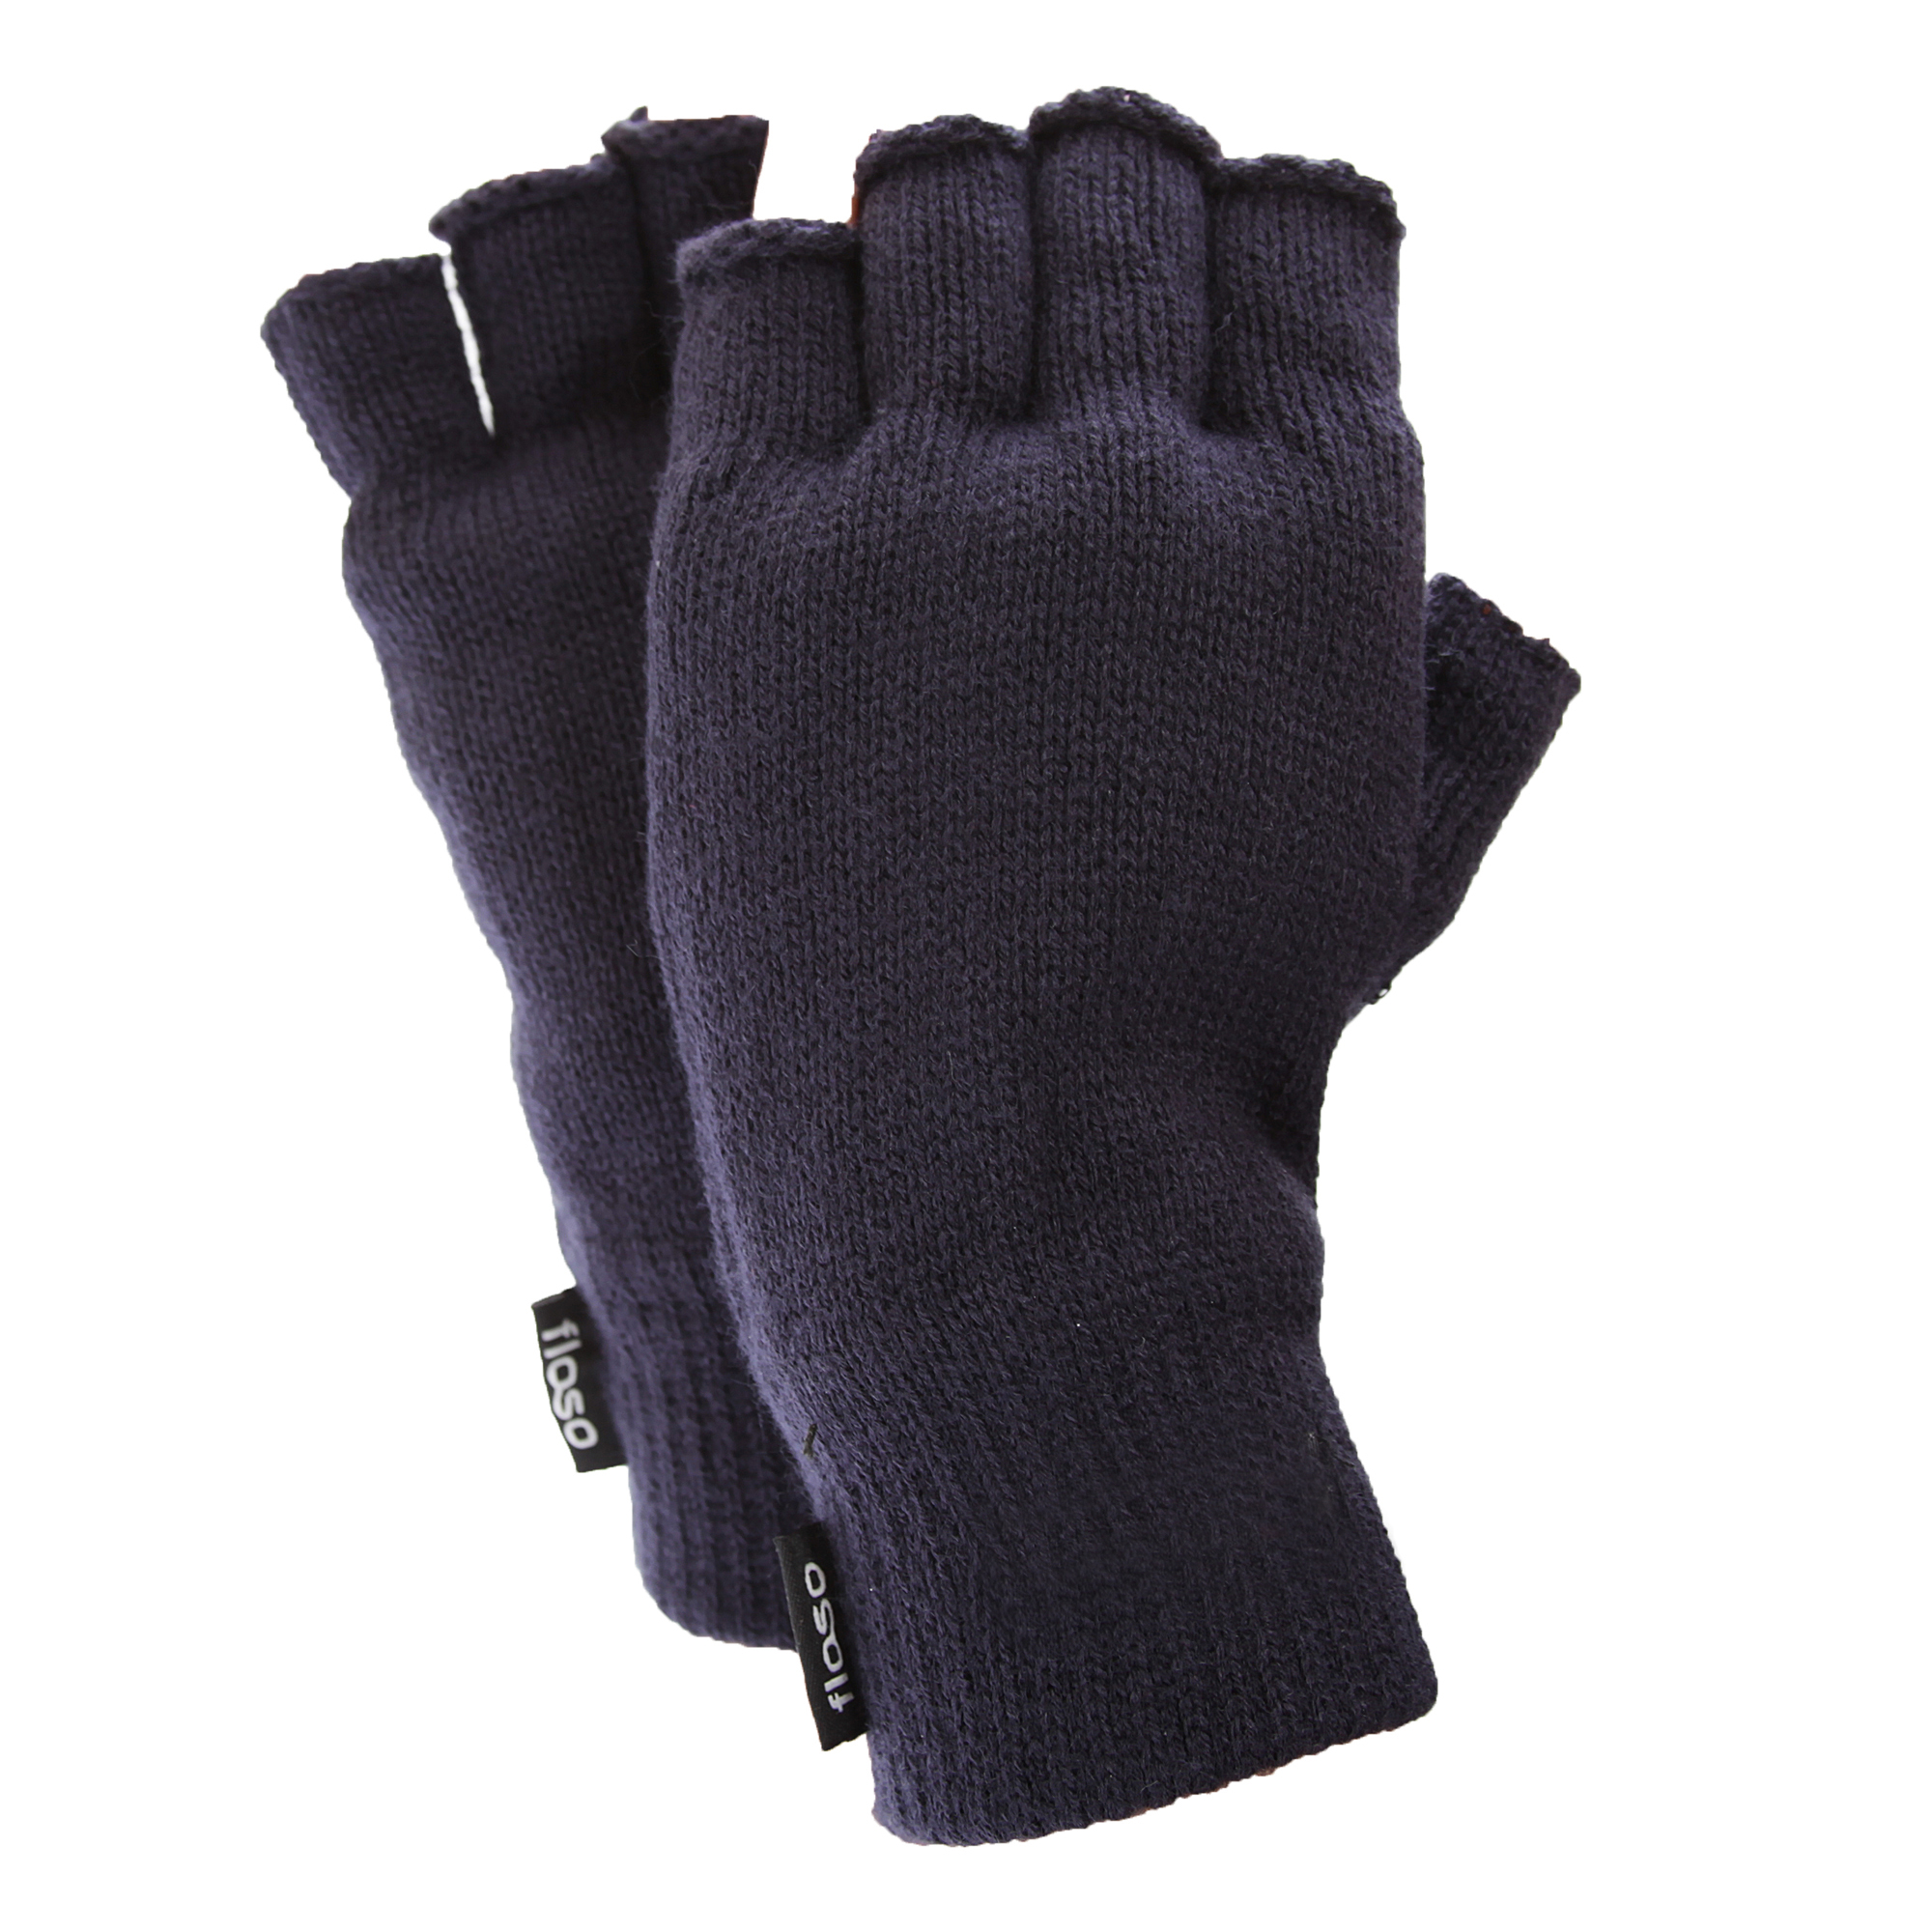 Fingerless gloves thinsulate - Floso Mens Thinsulate Thermal Winter Warm Casual Fingerless